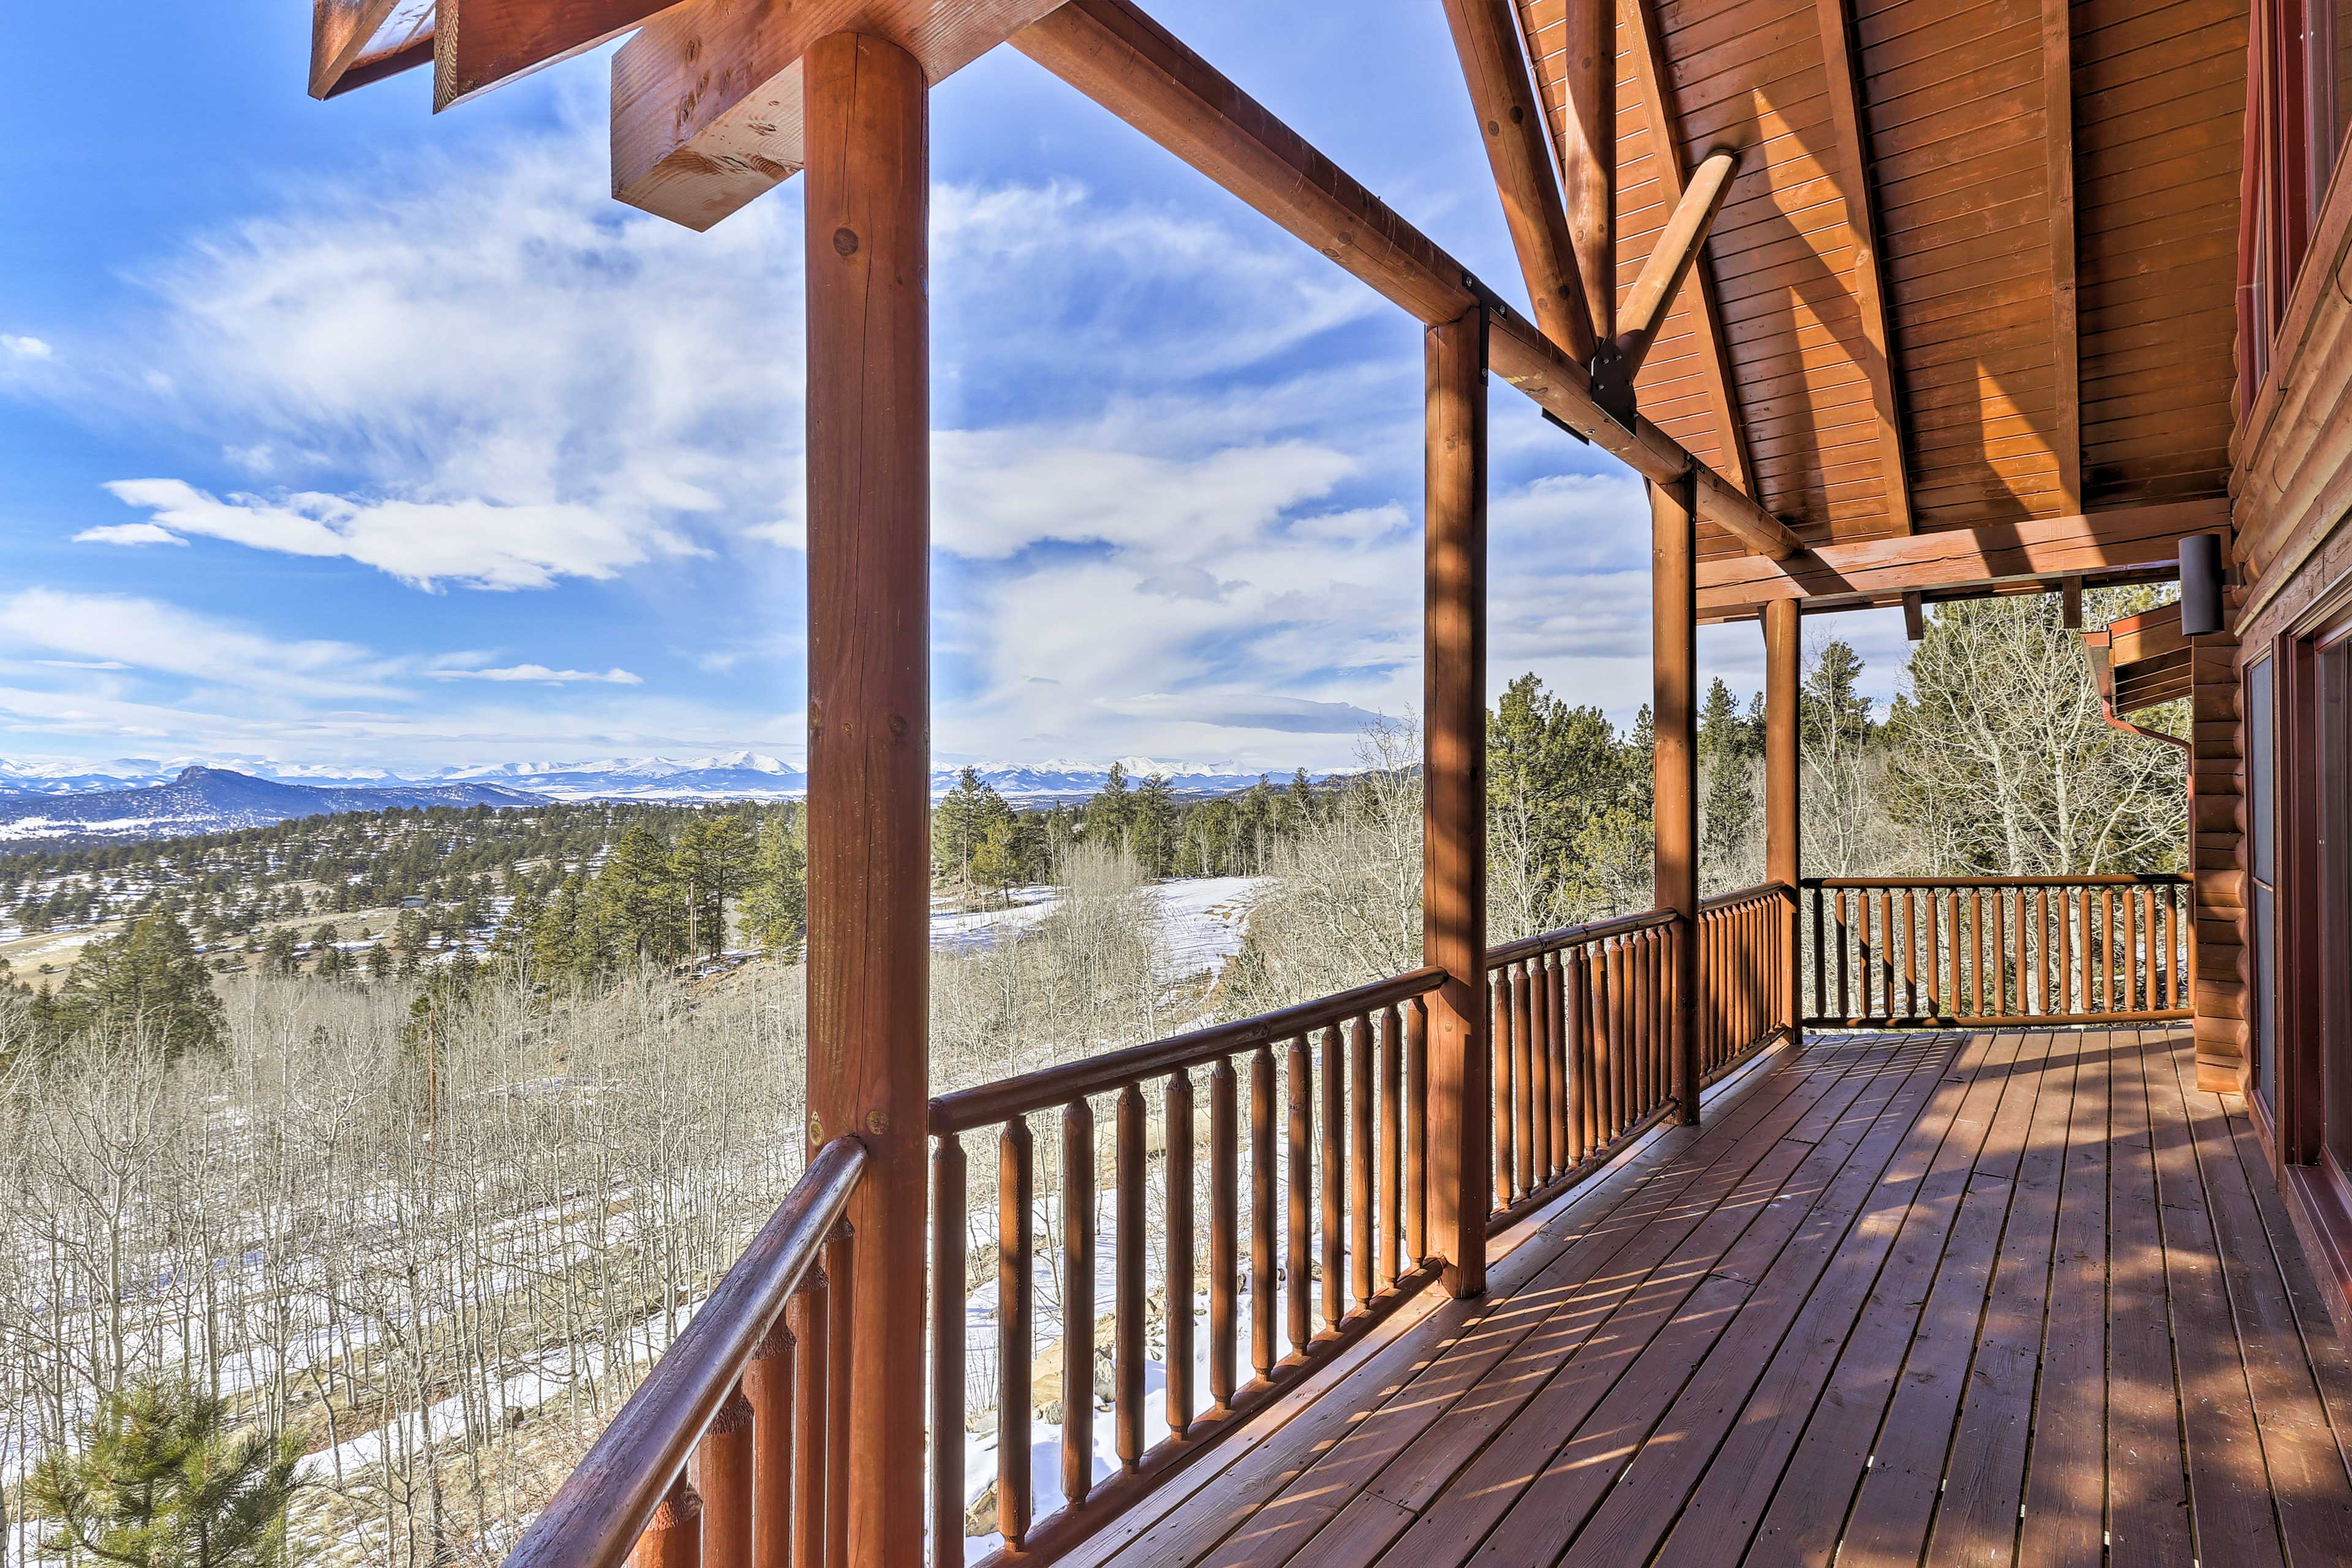 The deck provides breathtaking views.